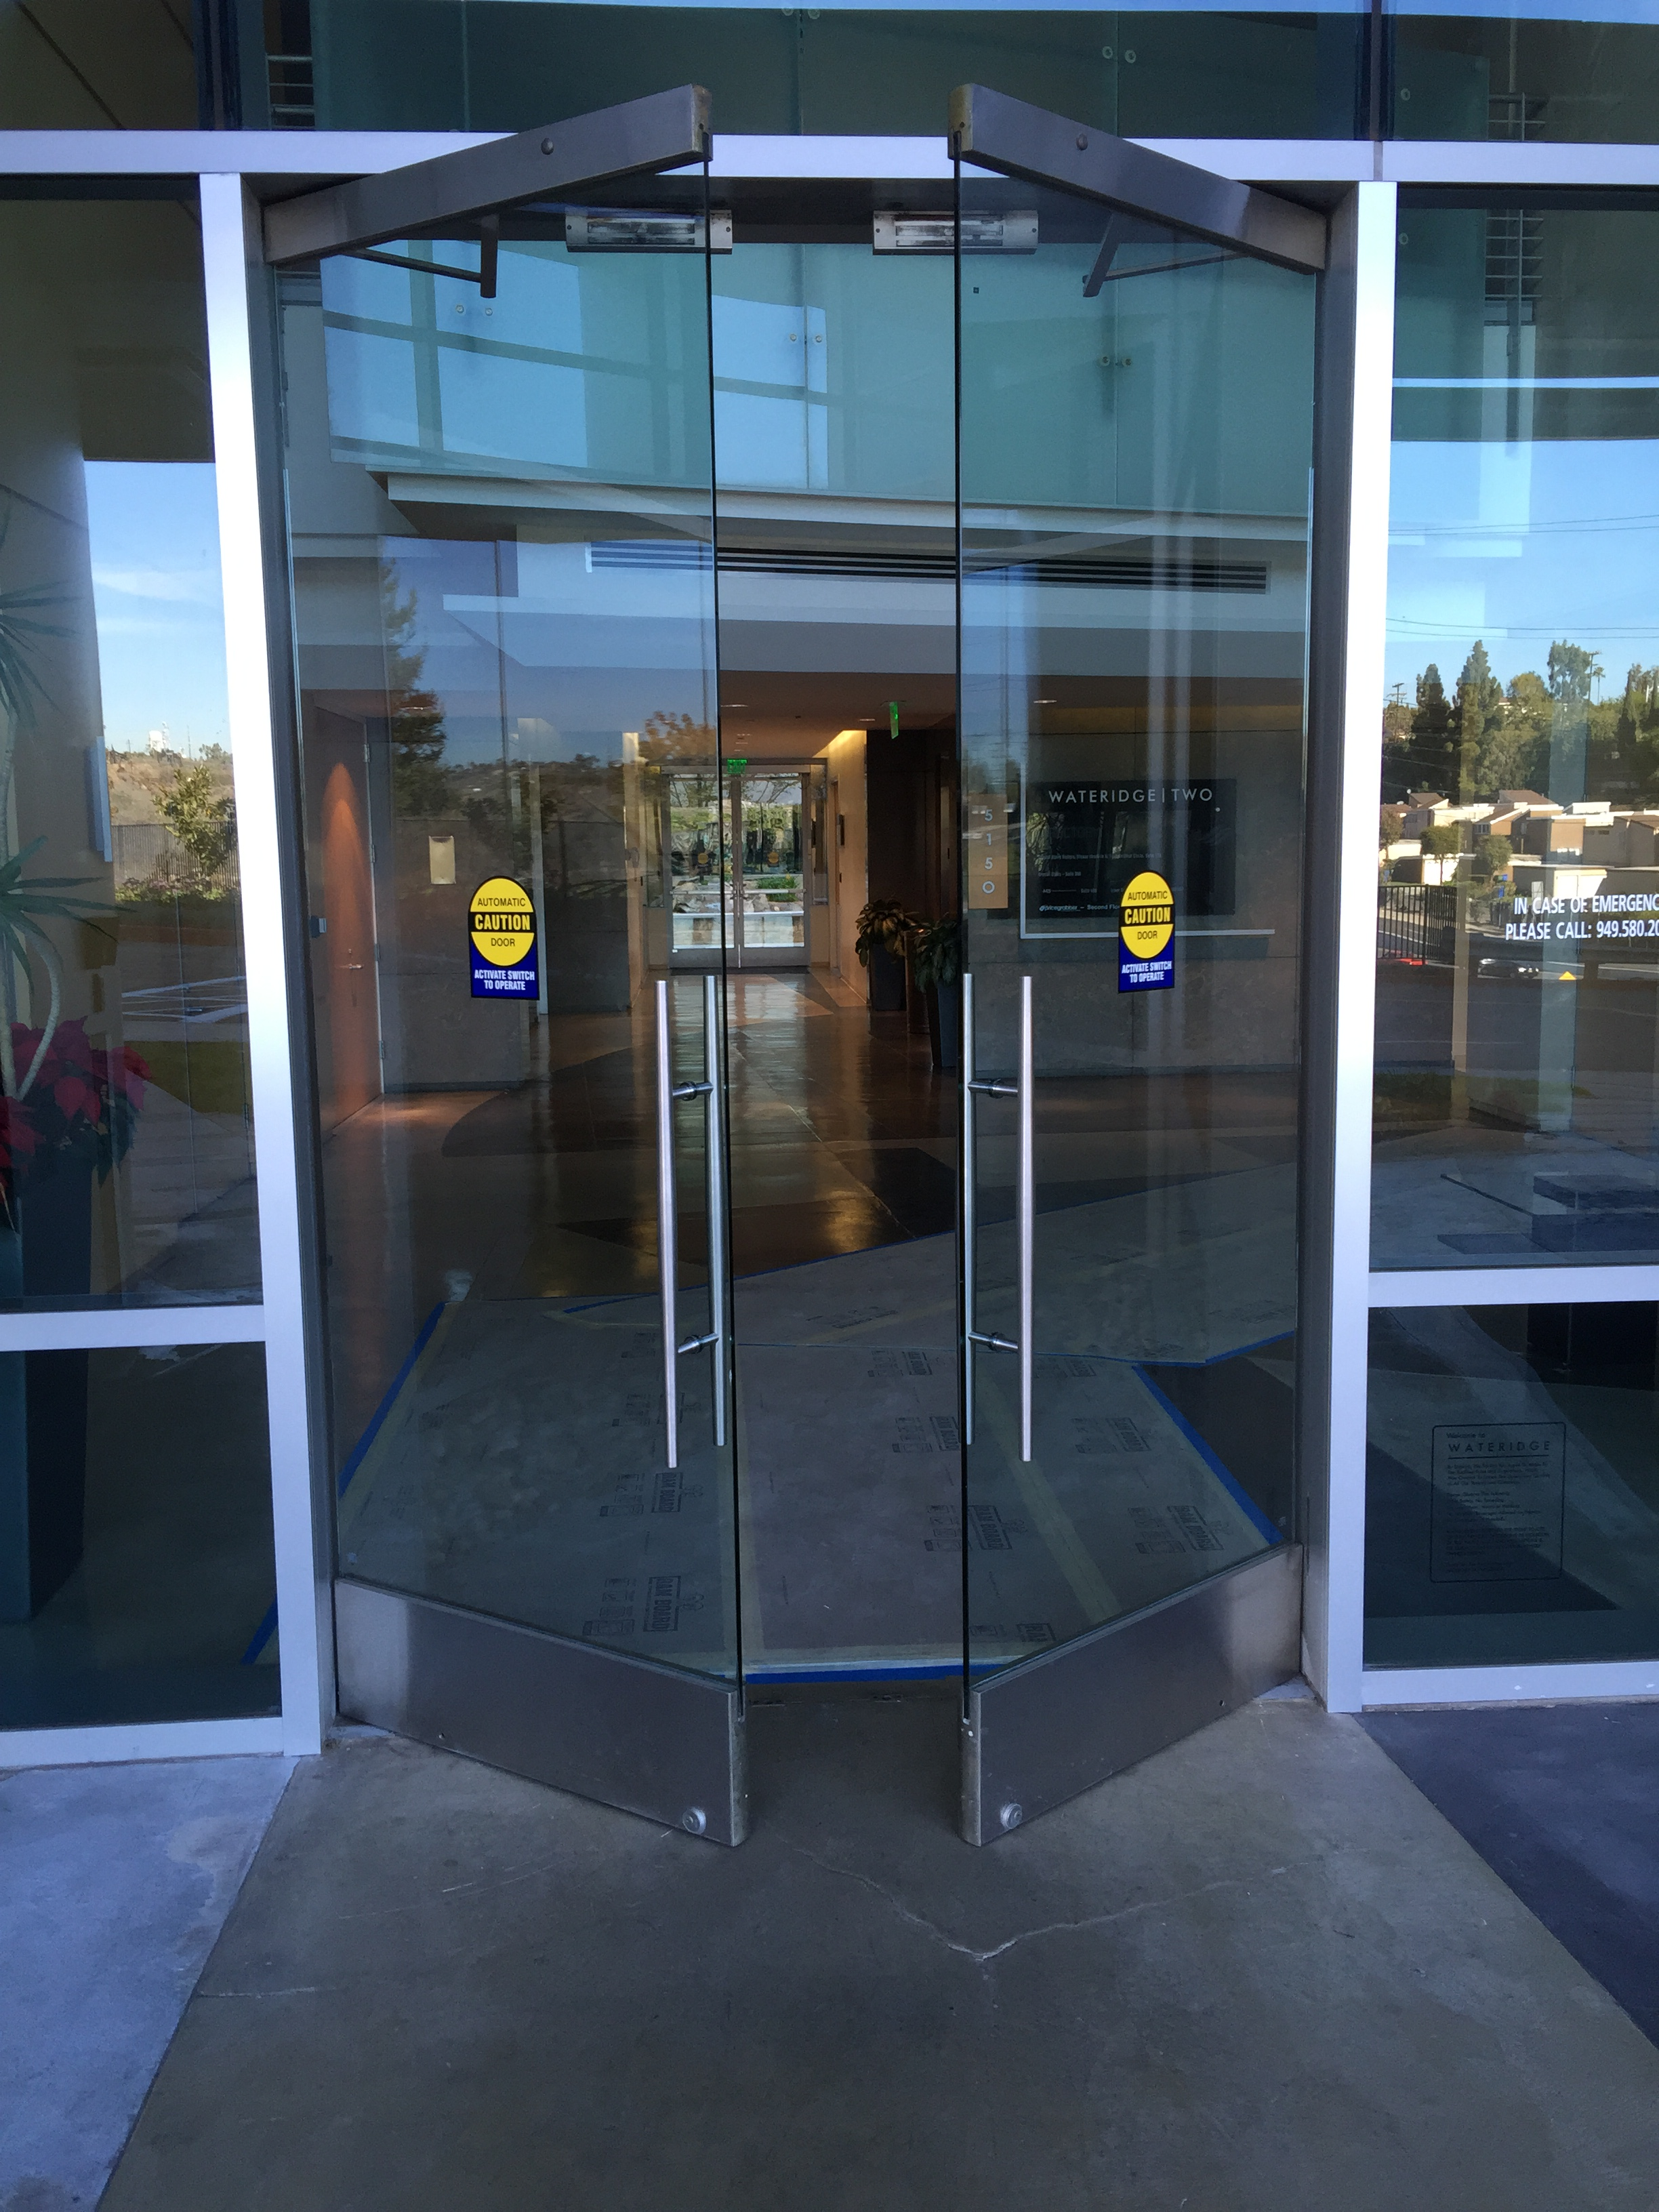 6896 Barr Commercial Doors Orange County San Bernardino Riverside How Not display image of Automatic Commercial & Automatic Commercial Doors Ideas Design Pics \u0026 Examples ... Pezcame.Com